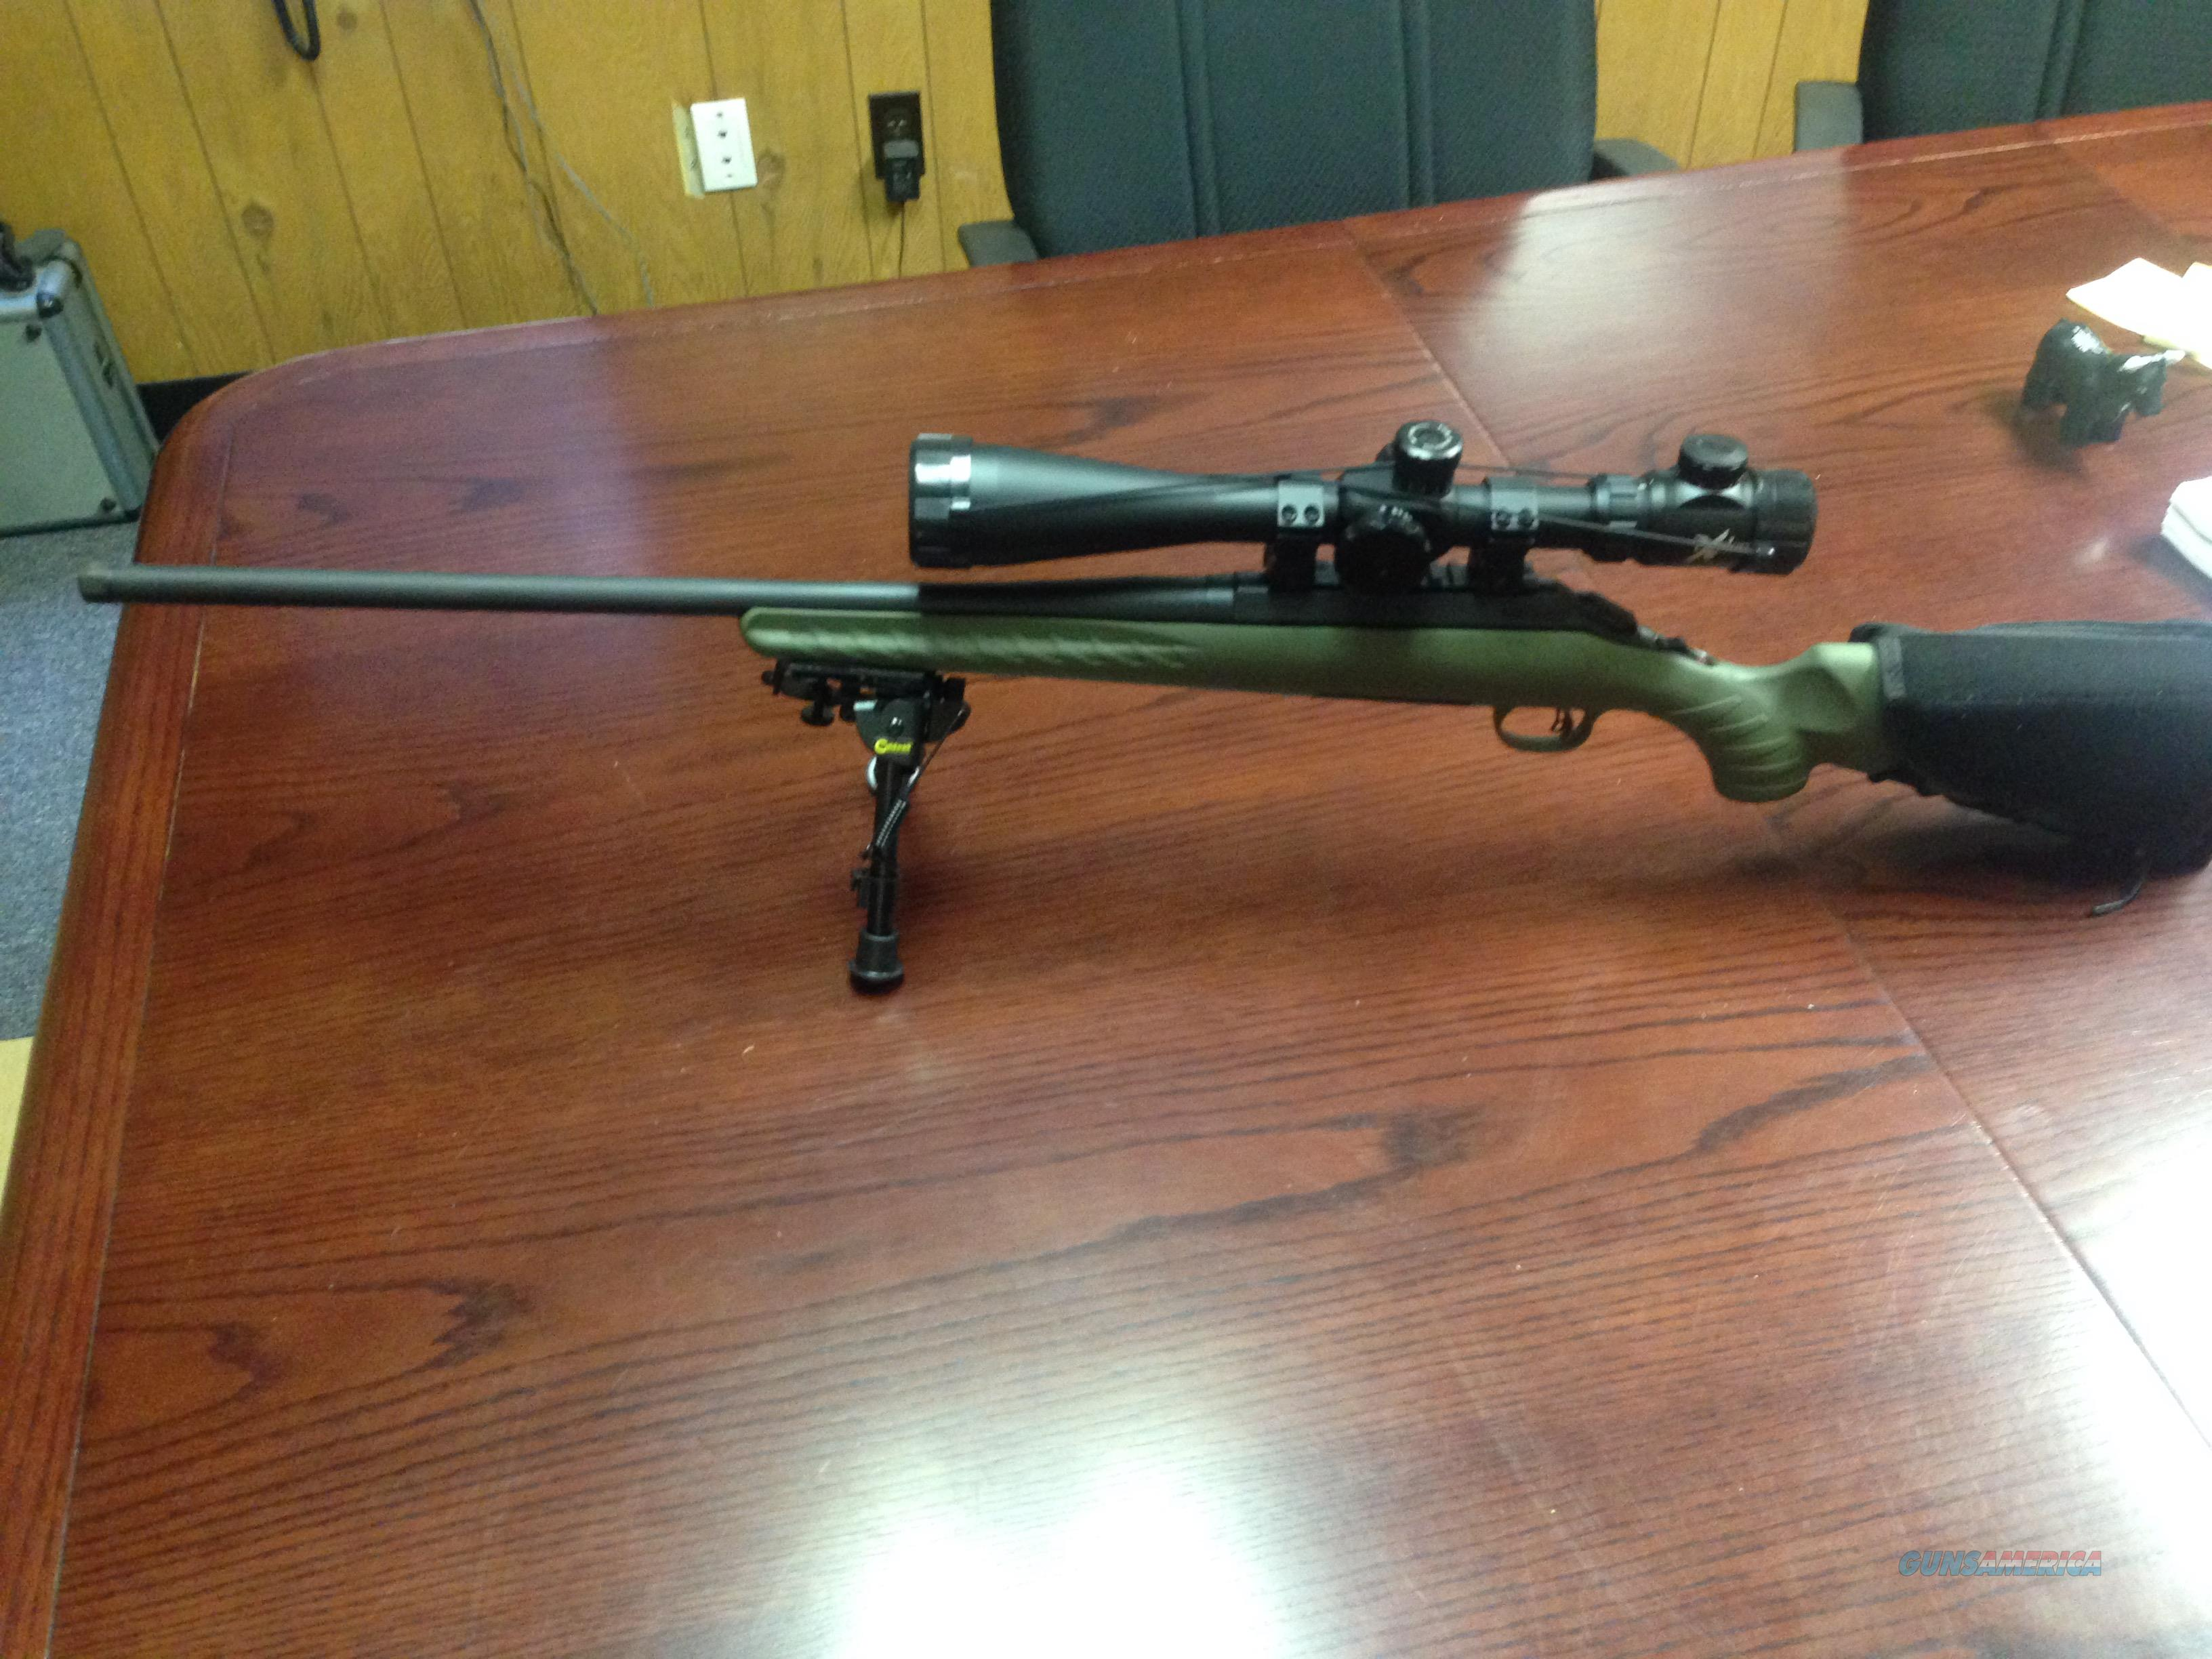 RUGER AMERICAN RIFLE 6.5 CREEDMOOR PREDATOR with 8-32x50 Optics  Guns > Rifles > Ruger Rifles > American Rifle